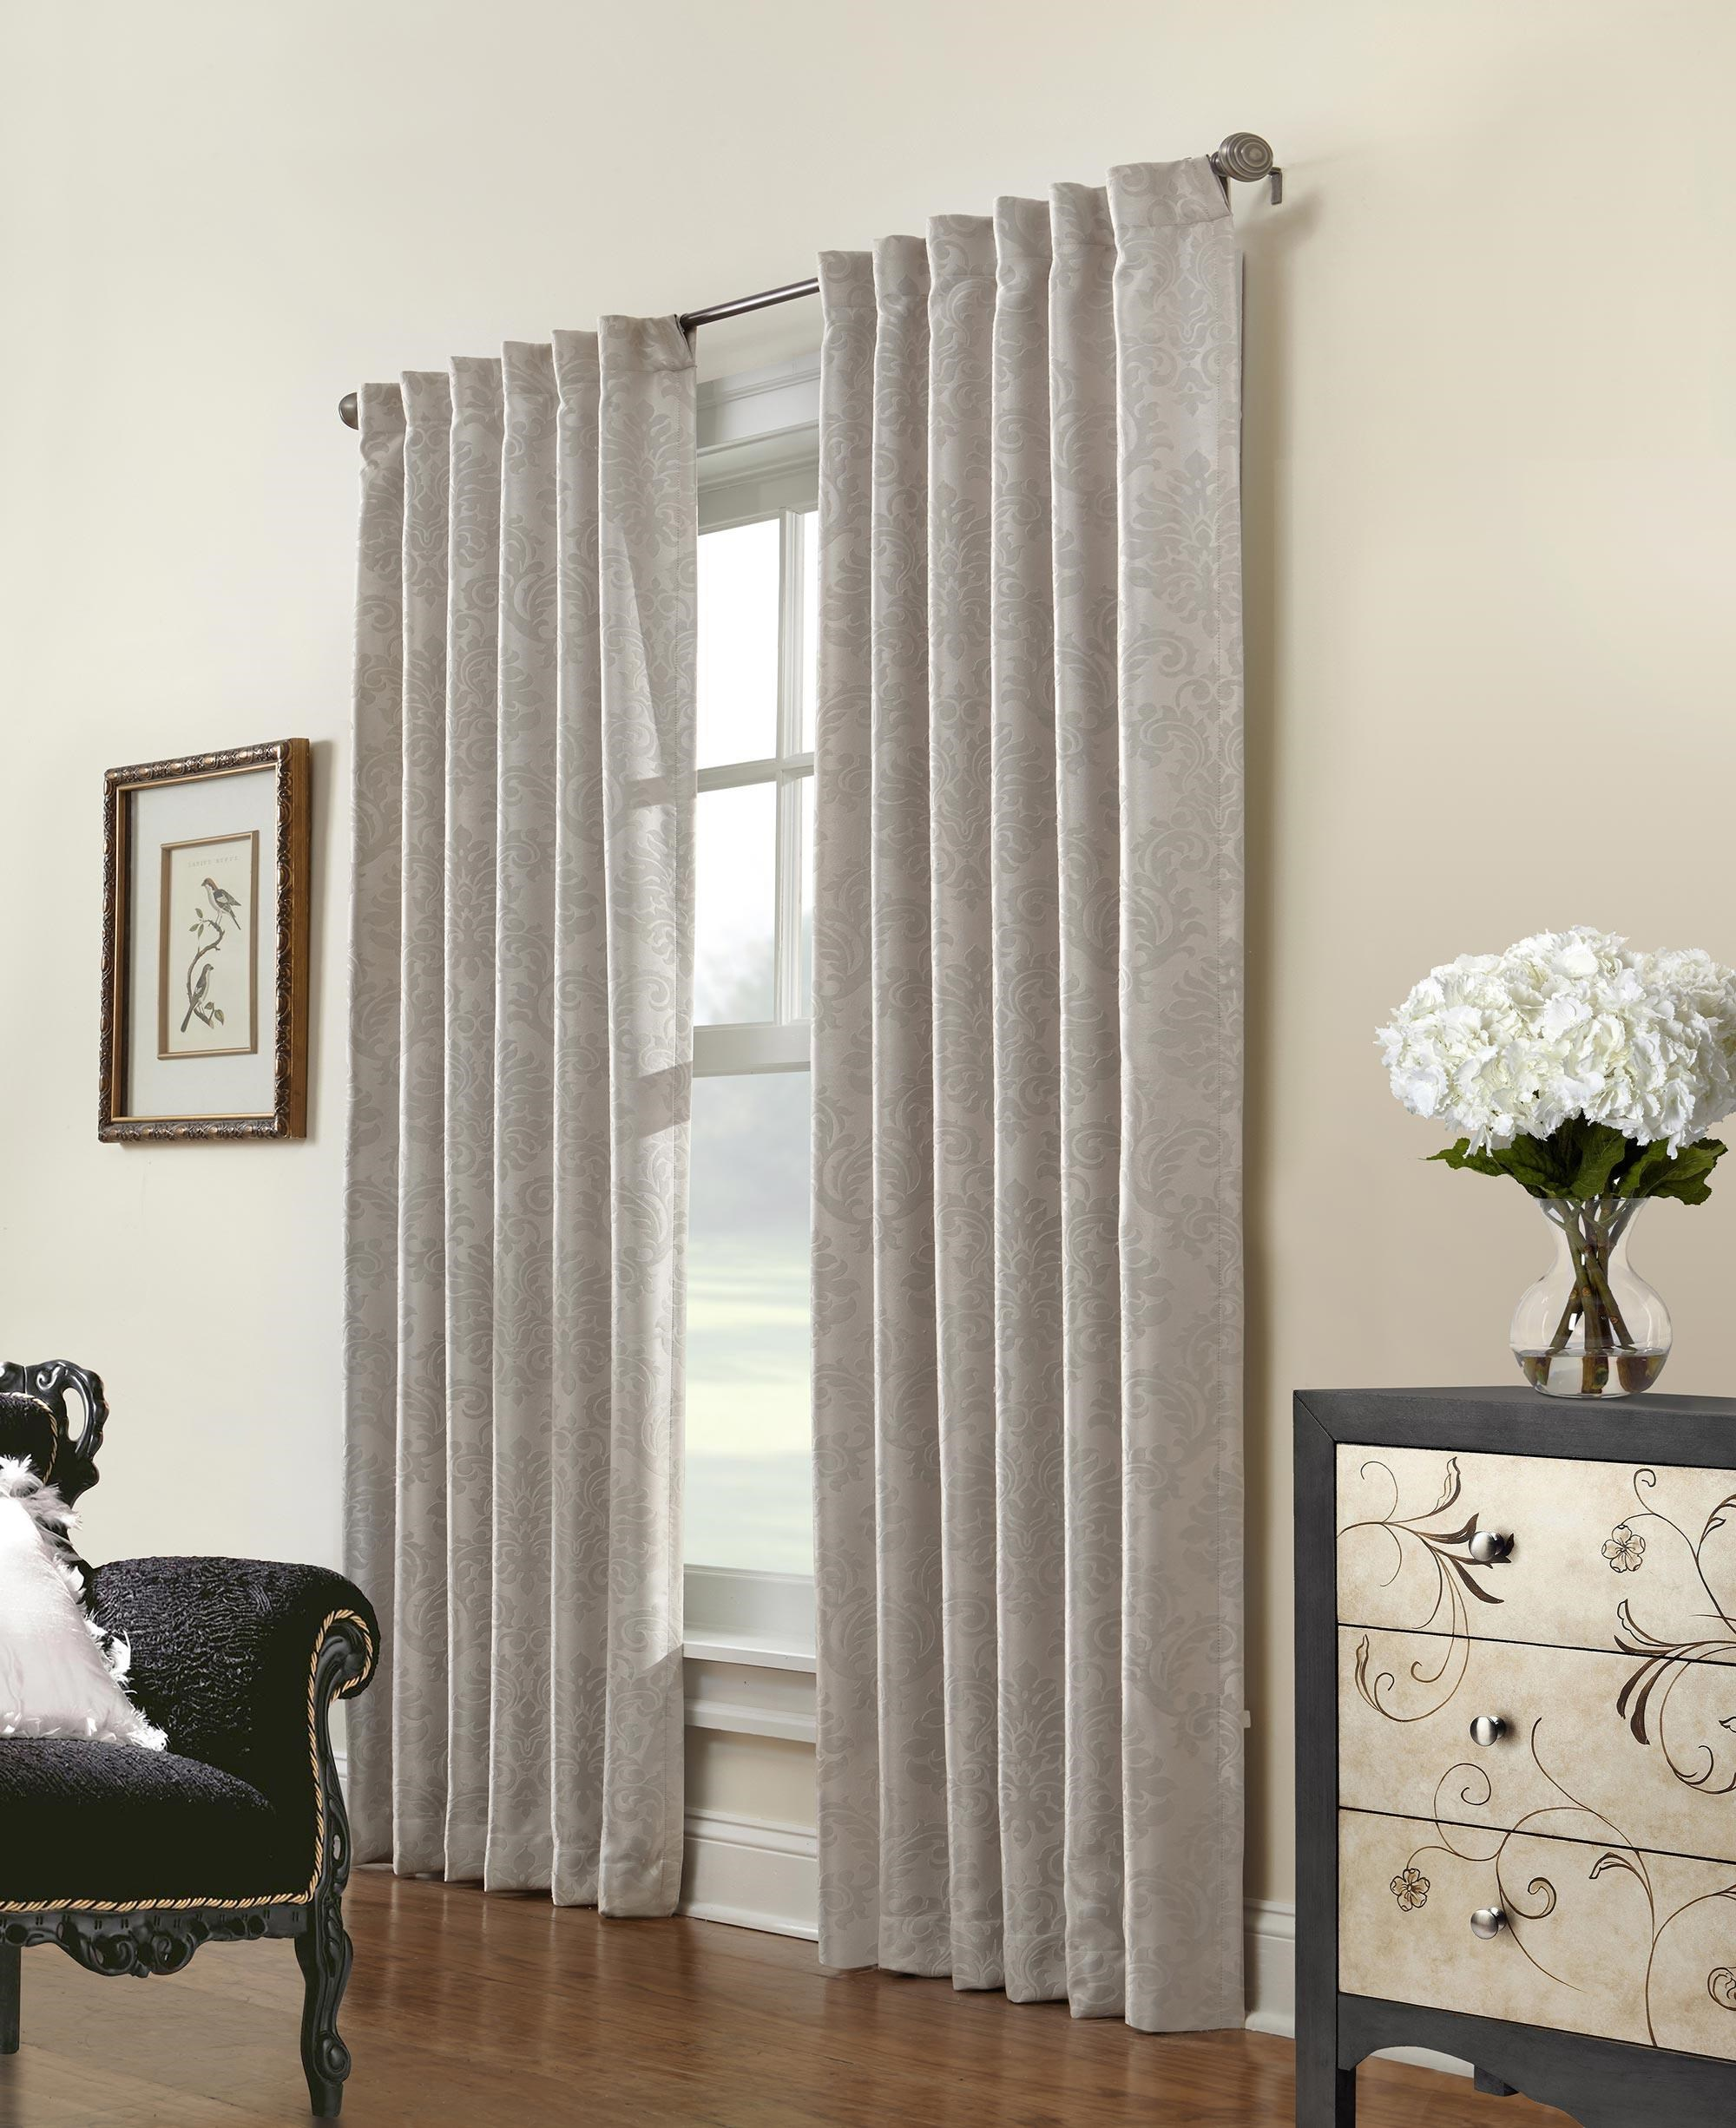 Commonwealth Home Fashions Belgique Woven Fabric Window Panel - Item Number: 71146-142-008-95